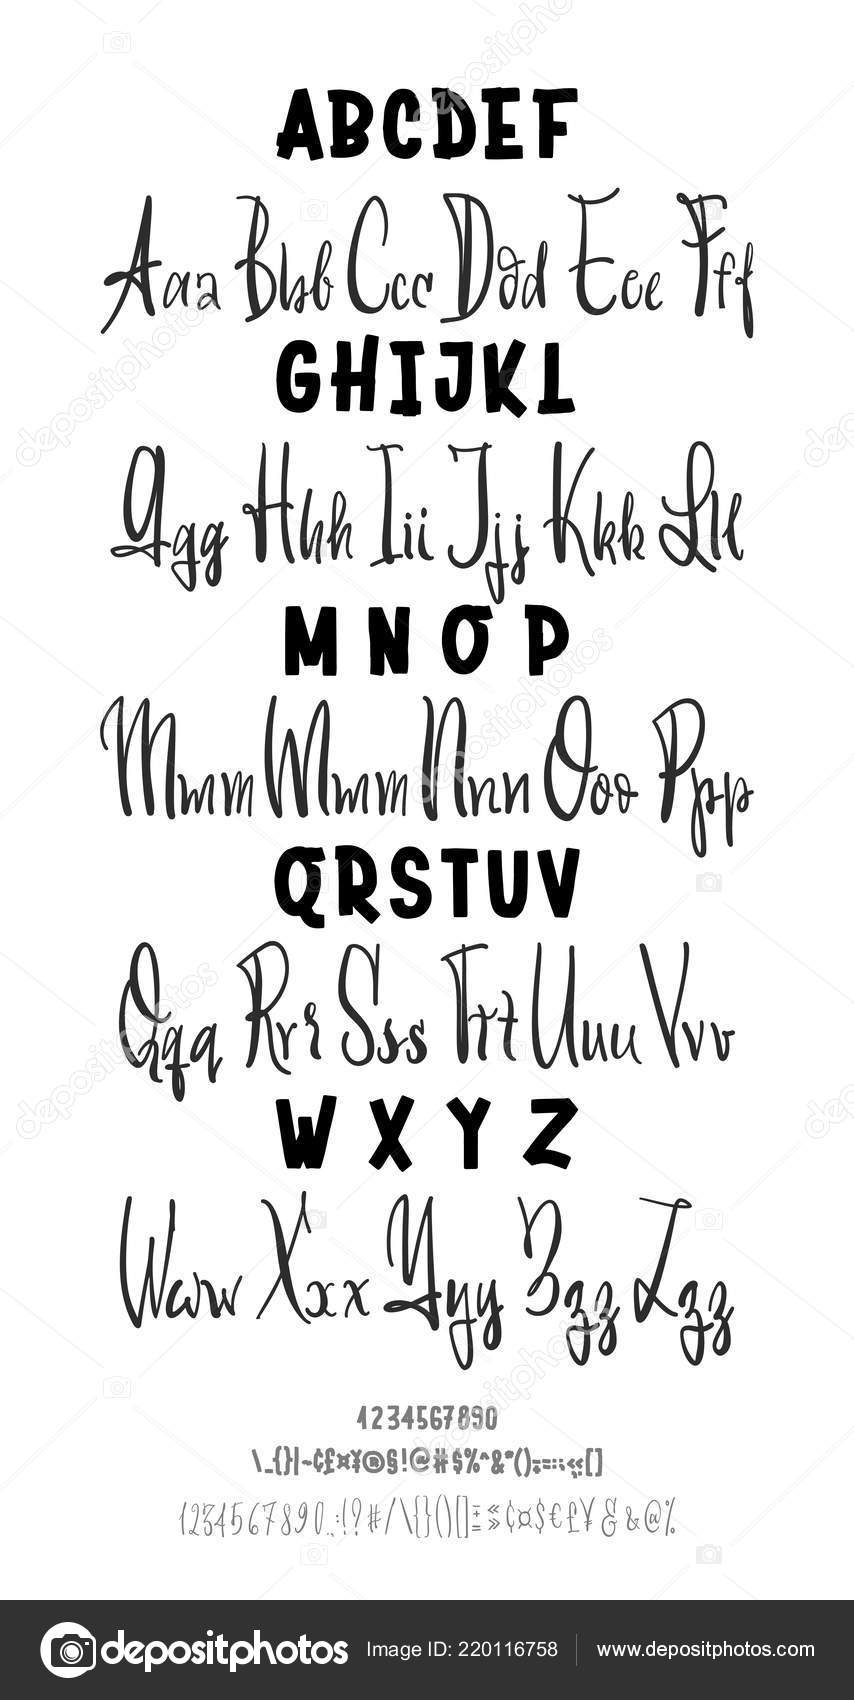 Two Font Vector Hand Drawn Typeface Brush Painted Letters